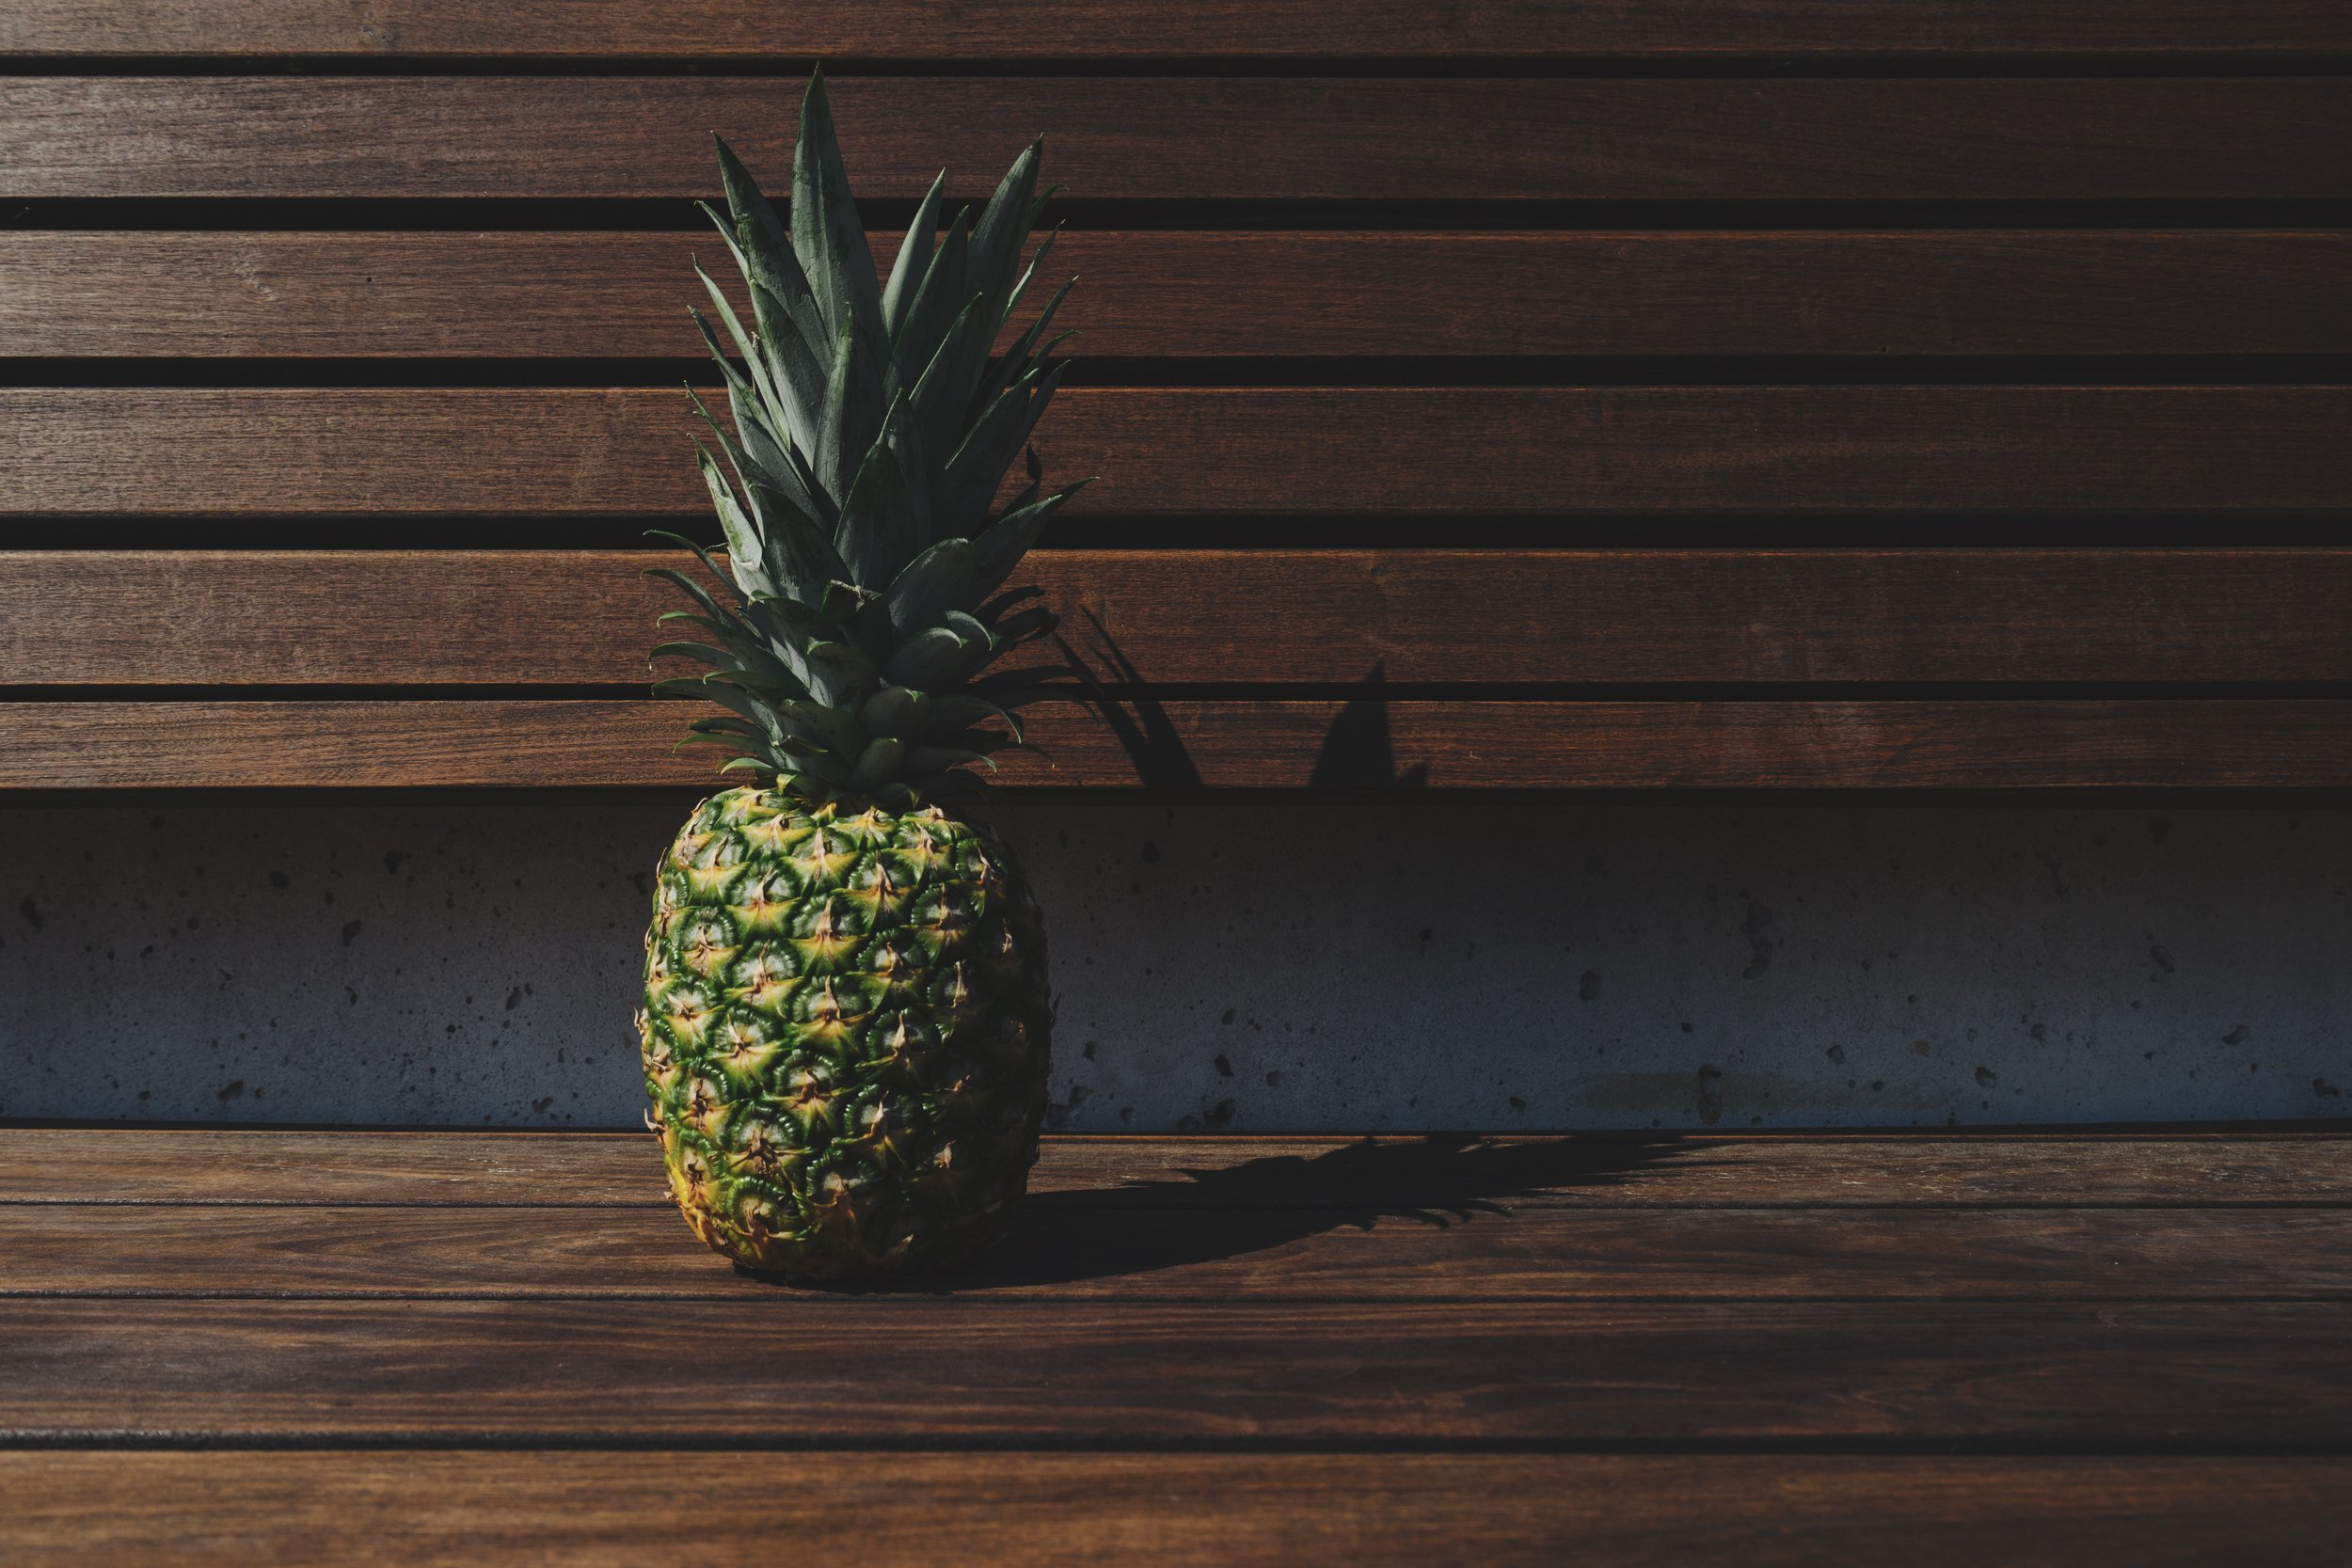 pineapple-supply-co-113178.jpg